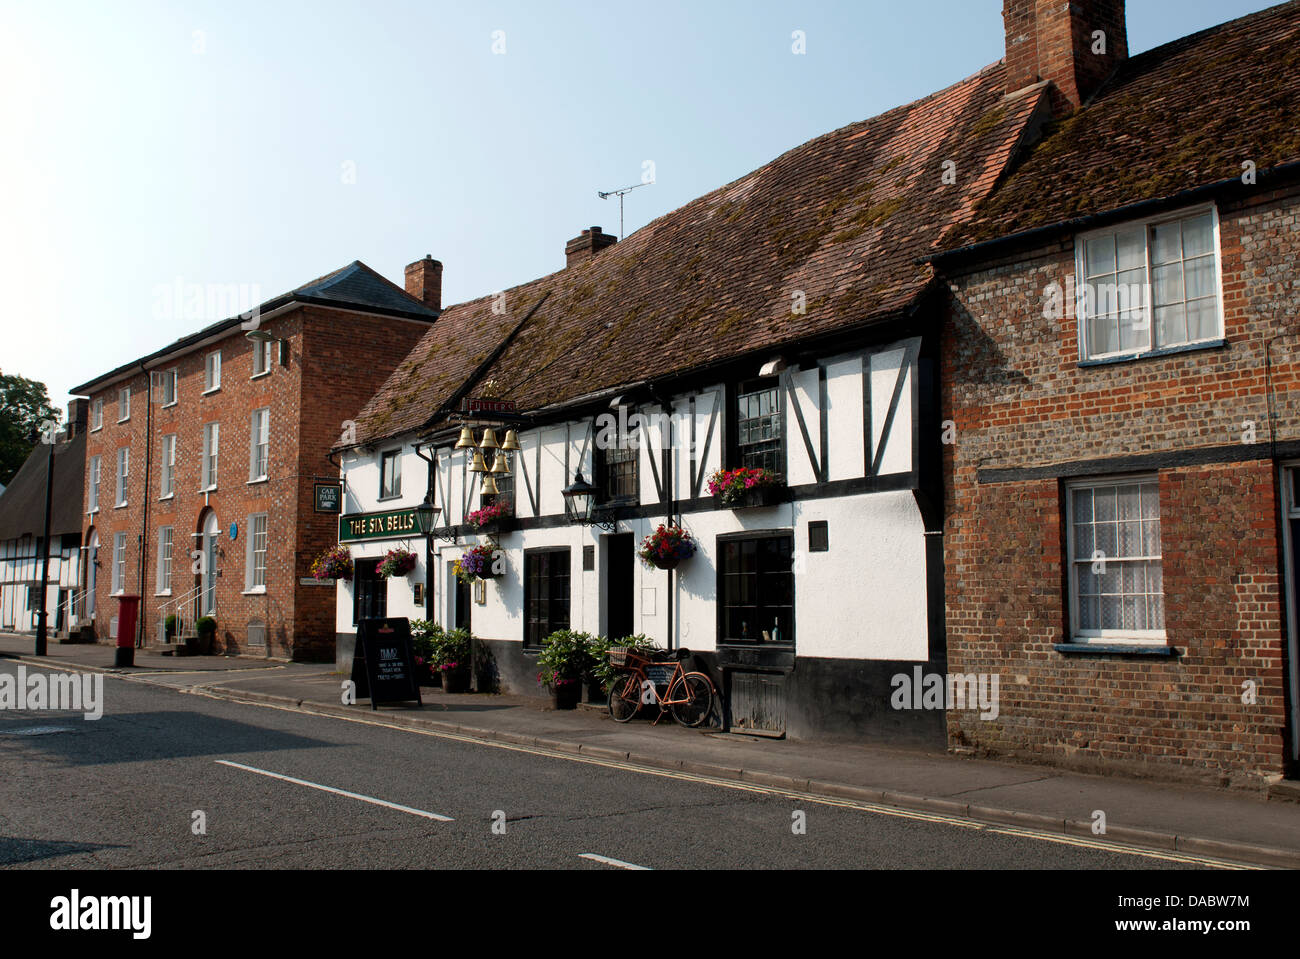 High Street and The Six Bells pub, Thame, Oxfordshire, UK - Stock Image